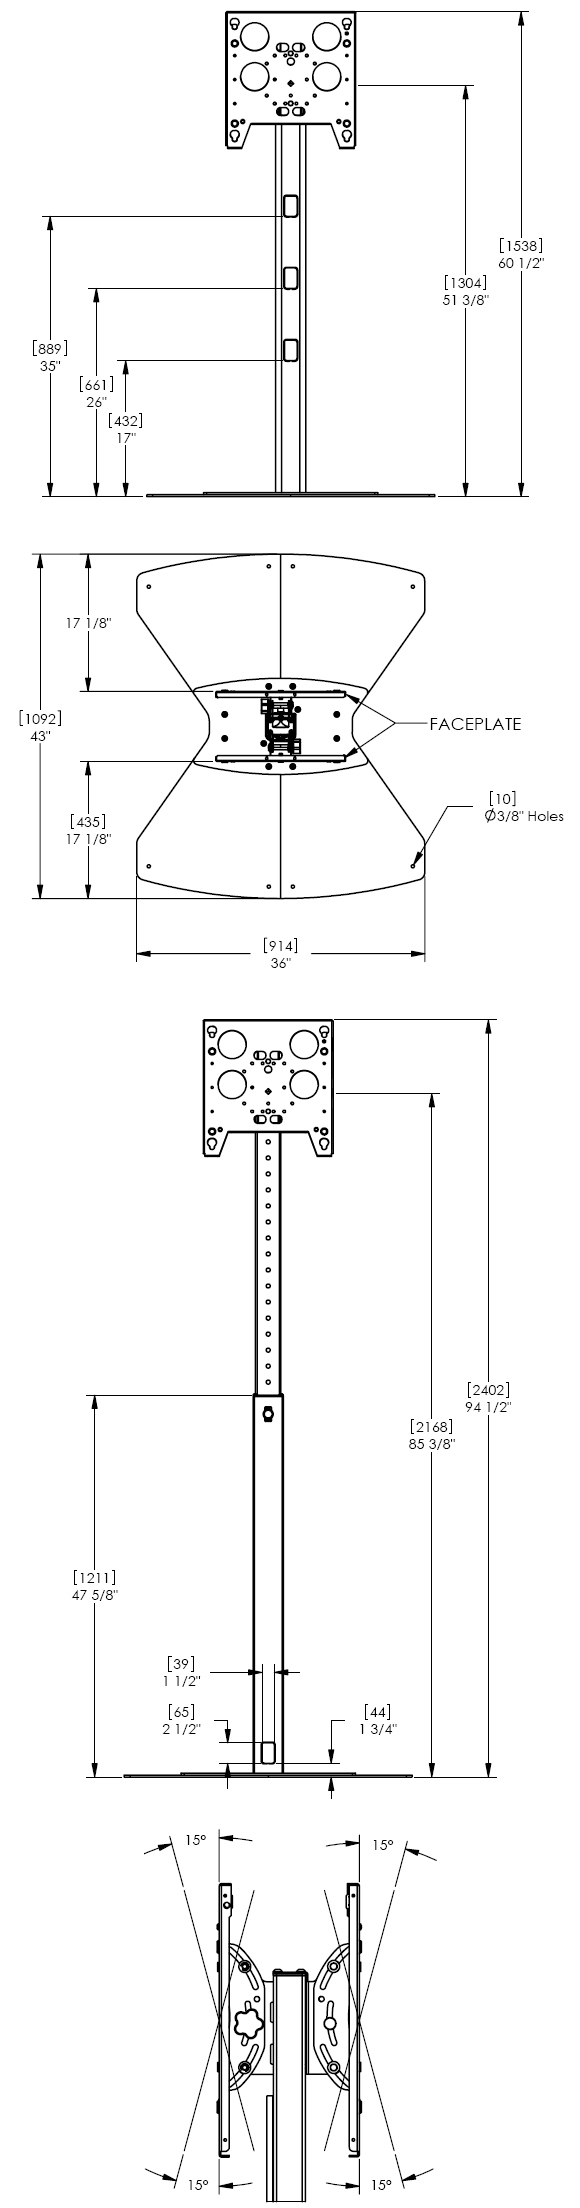 Technical Drawing for Chief PF2UB or PF2US Flat Panel Dual Display Floor Stand